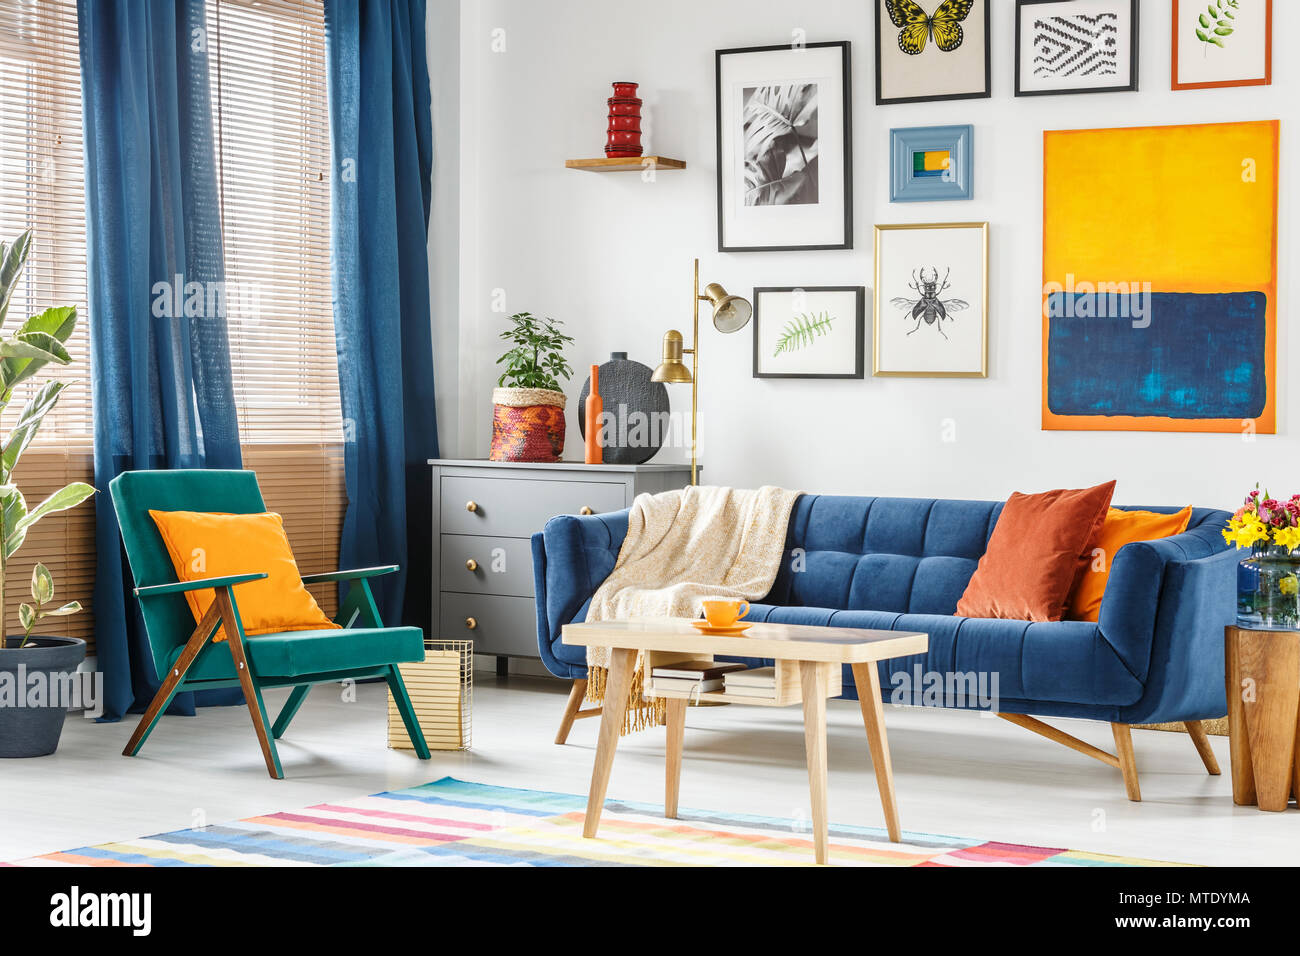 Real photo of a colorful living room interior with a green ...